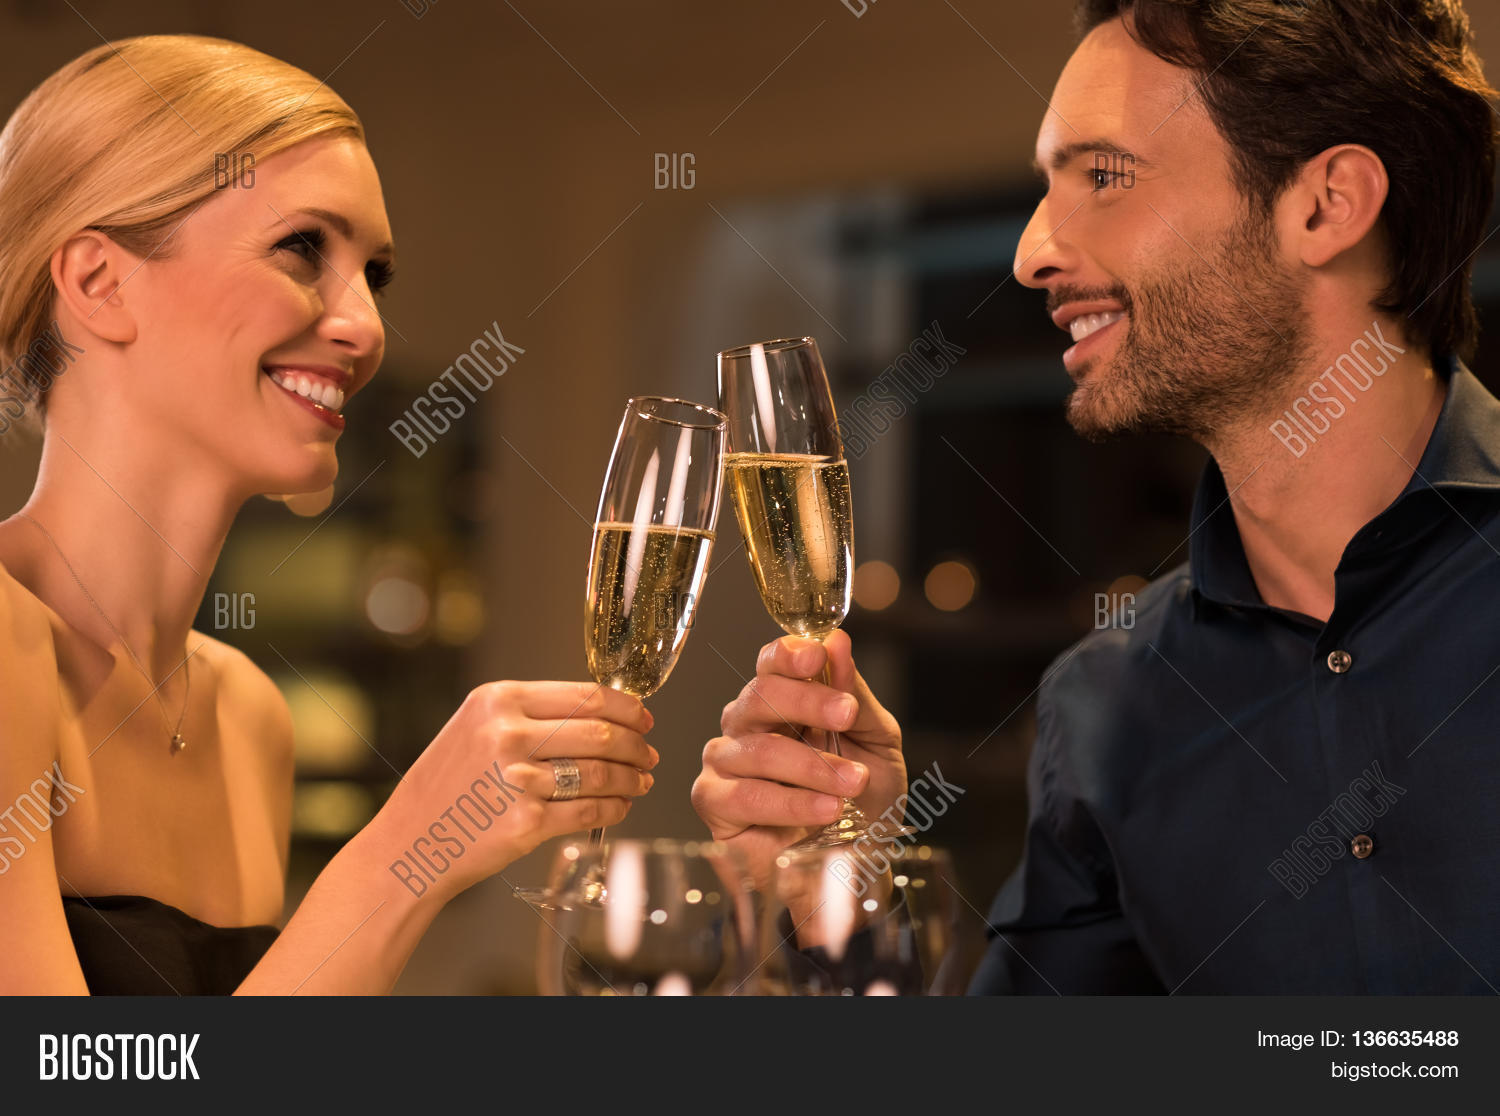 Happy Young Couple Image Photo Free Trial Bigstock